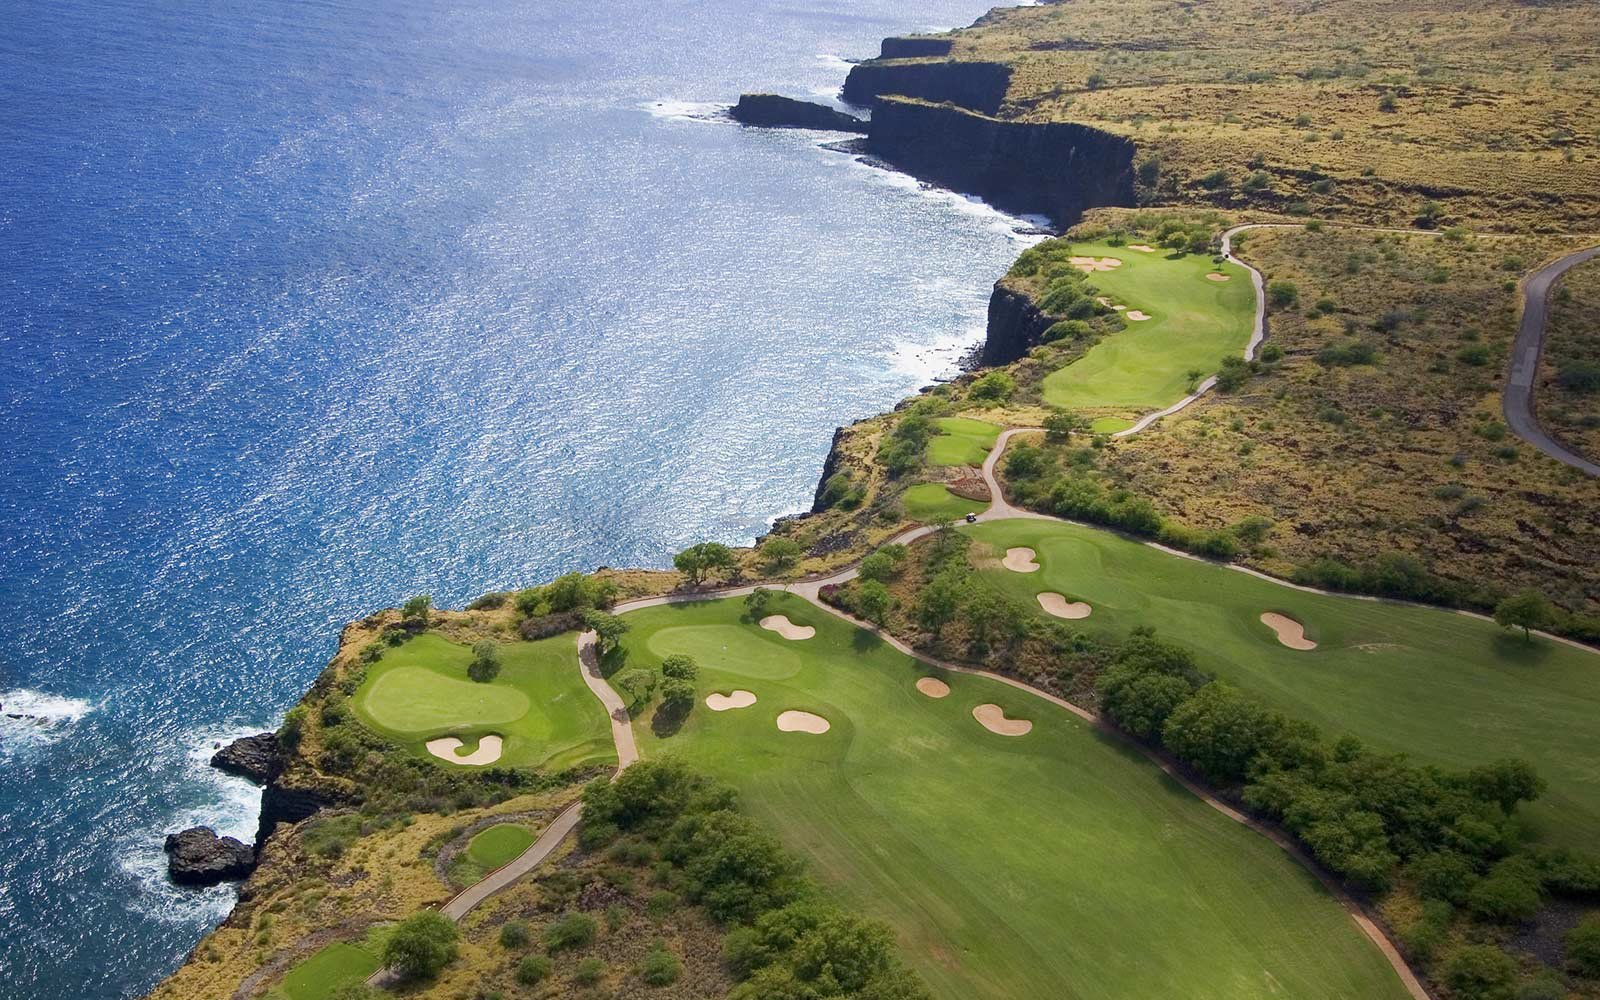 Manele Golf Course, Lanai, Hawaii